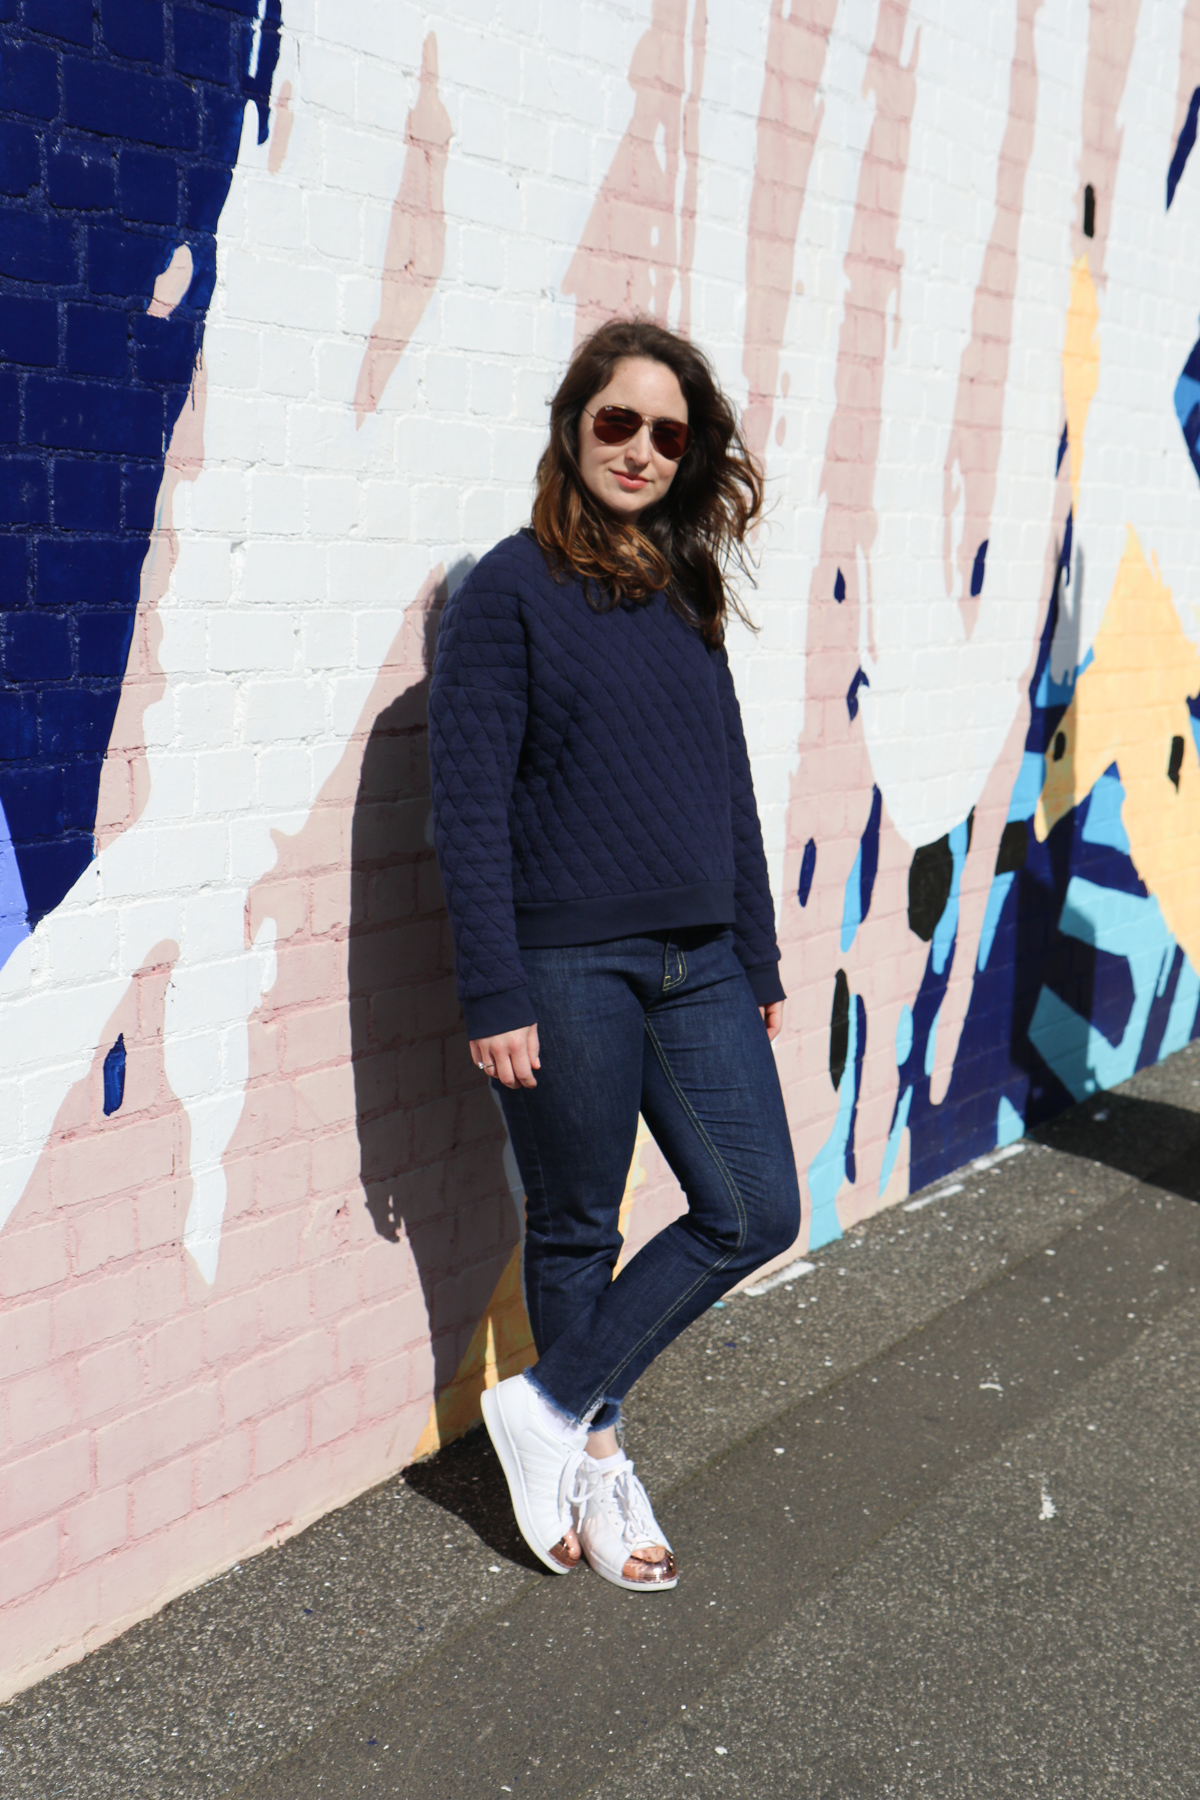 My favourite Jarrah sweater using quilted sweatshirt fabric from KnitWit! Megan Nielsen Design Diary